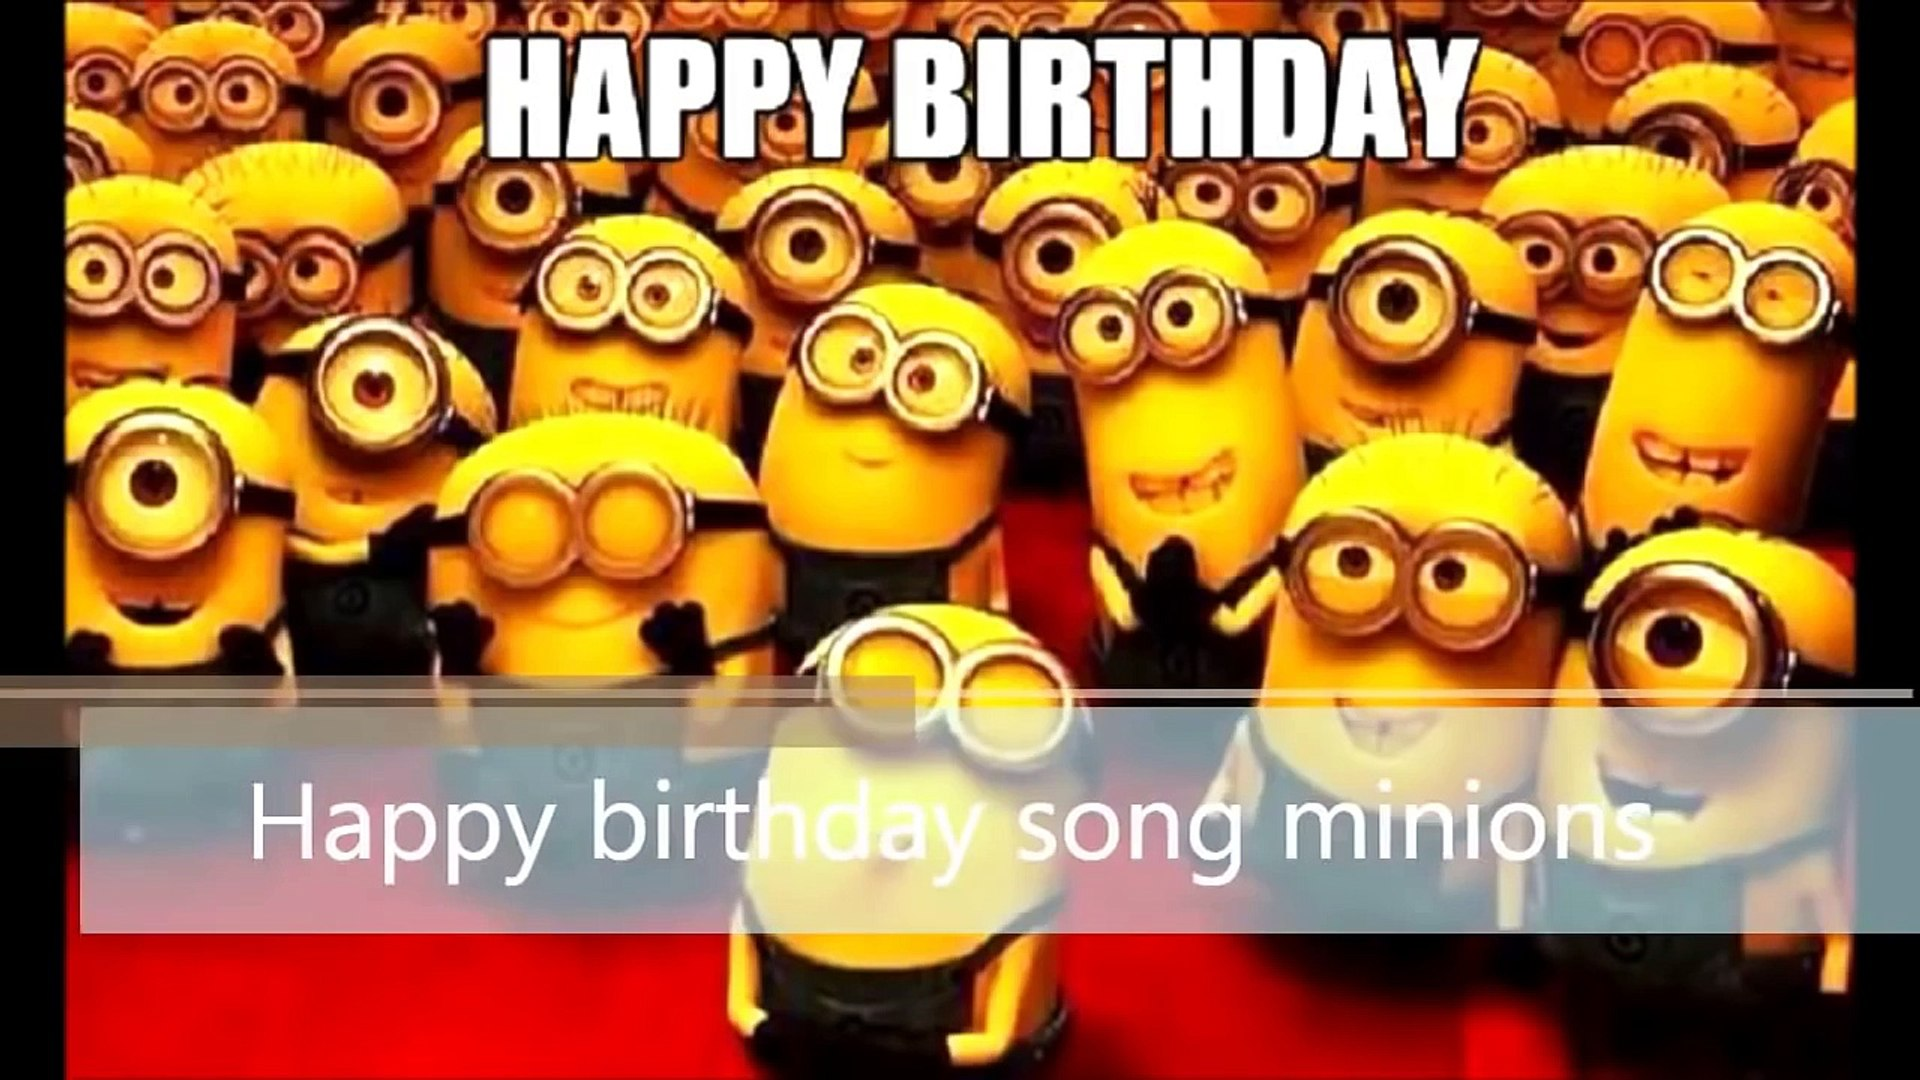 Happy Birthday Minions Song 2 In 1 Funny Happy Birthday Song Video Dailymotion